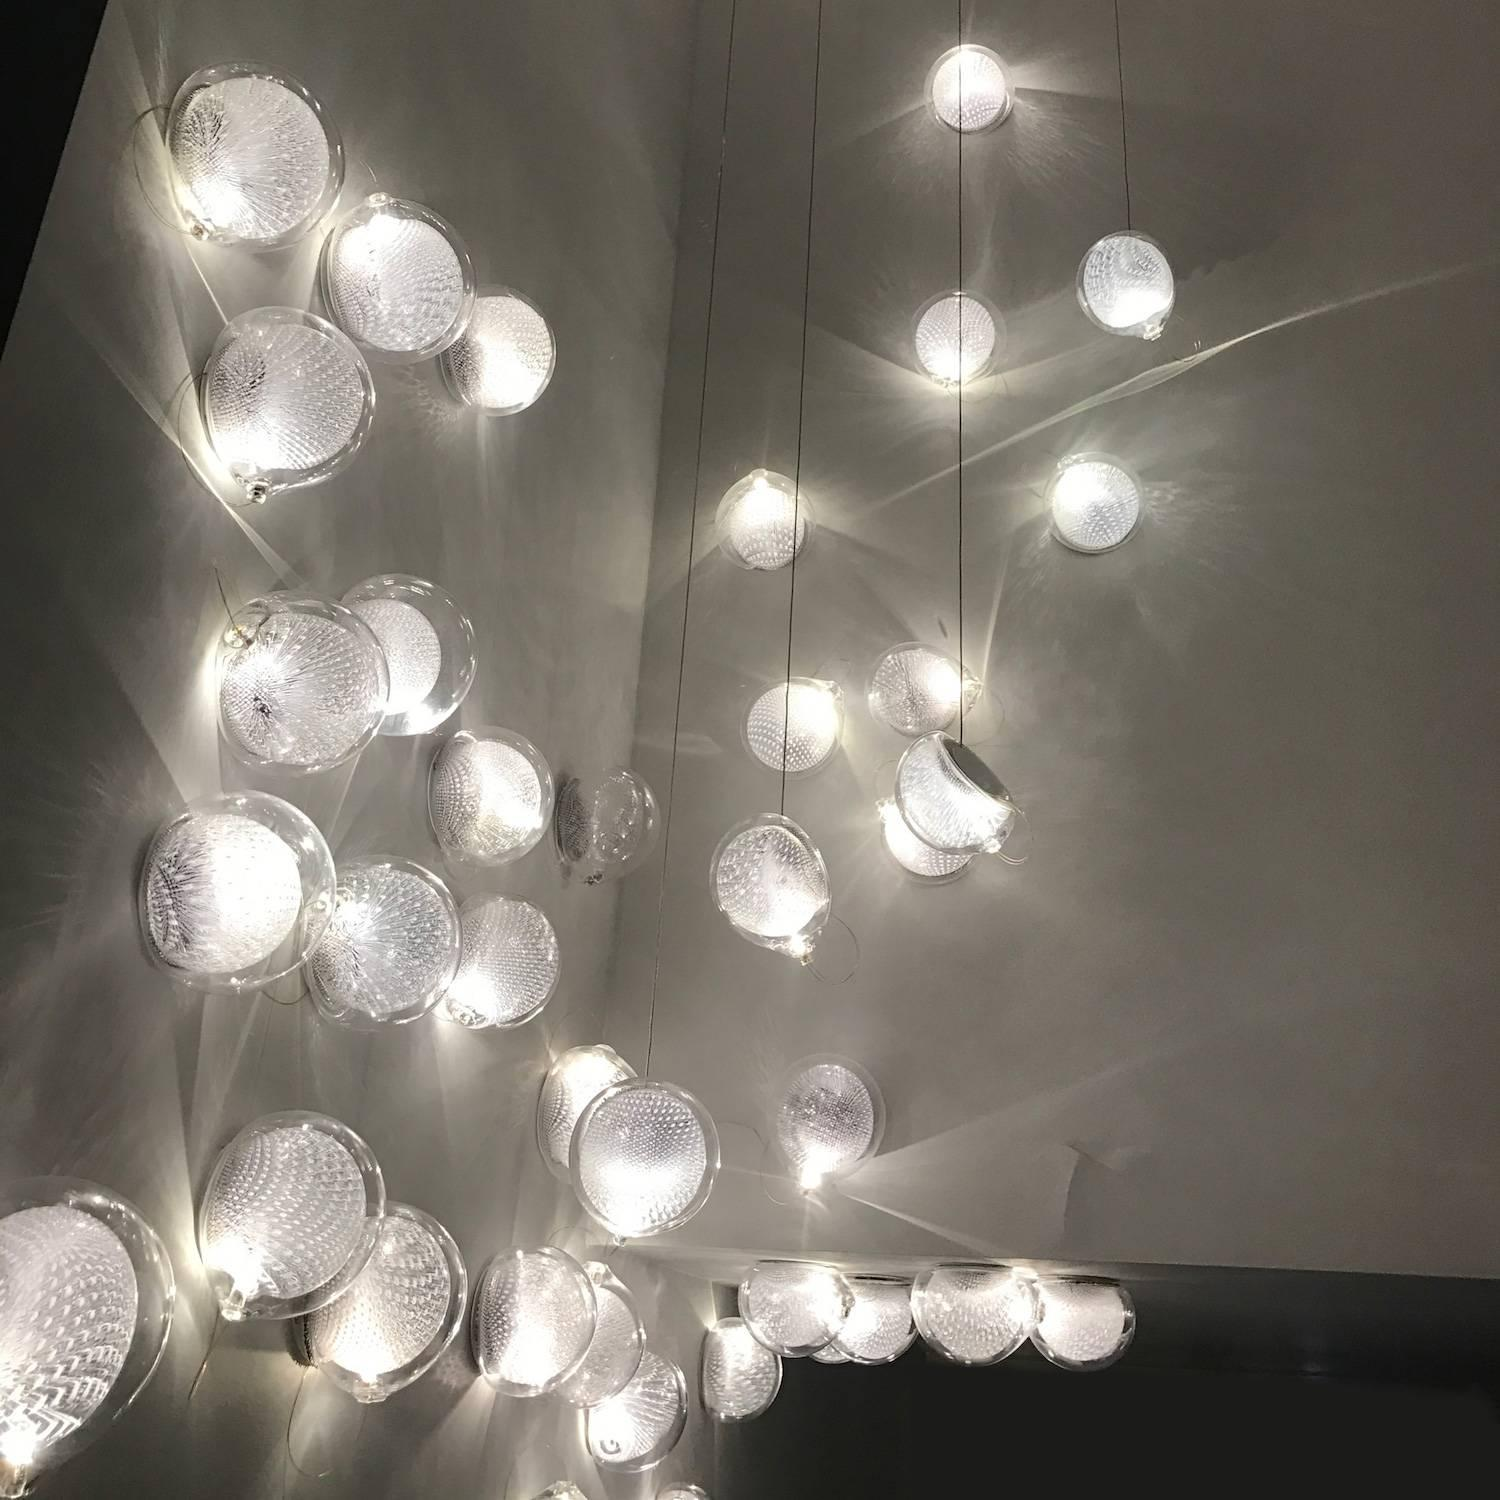 Bocci Len bocci 76s led wall sconce or ceiling fixture in blown glass and